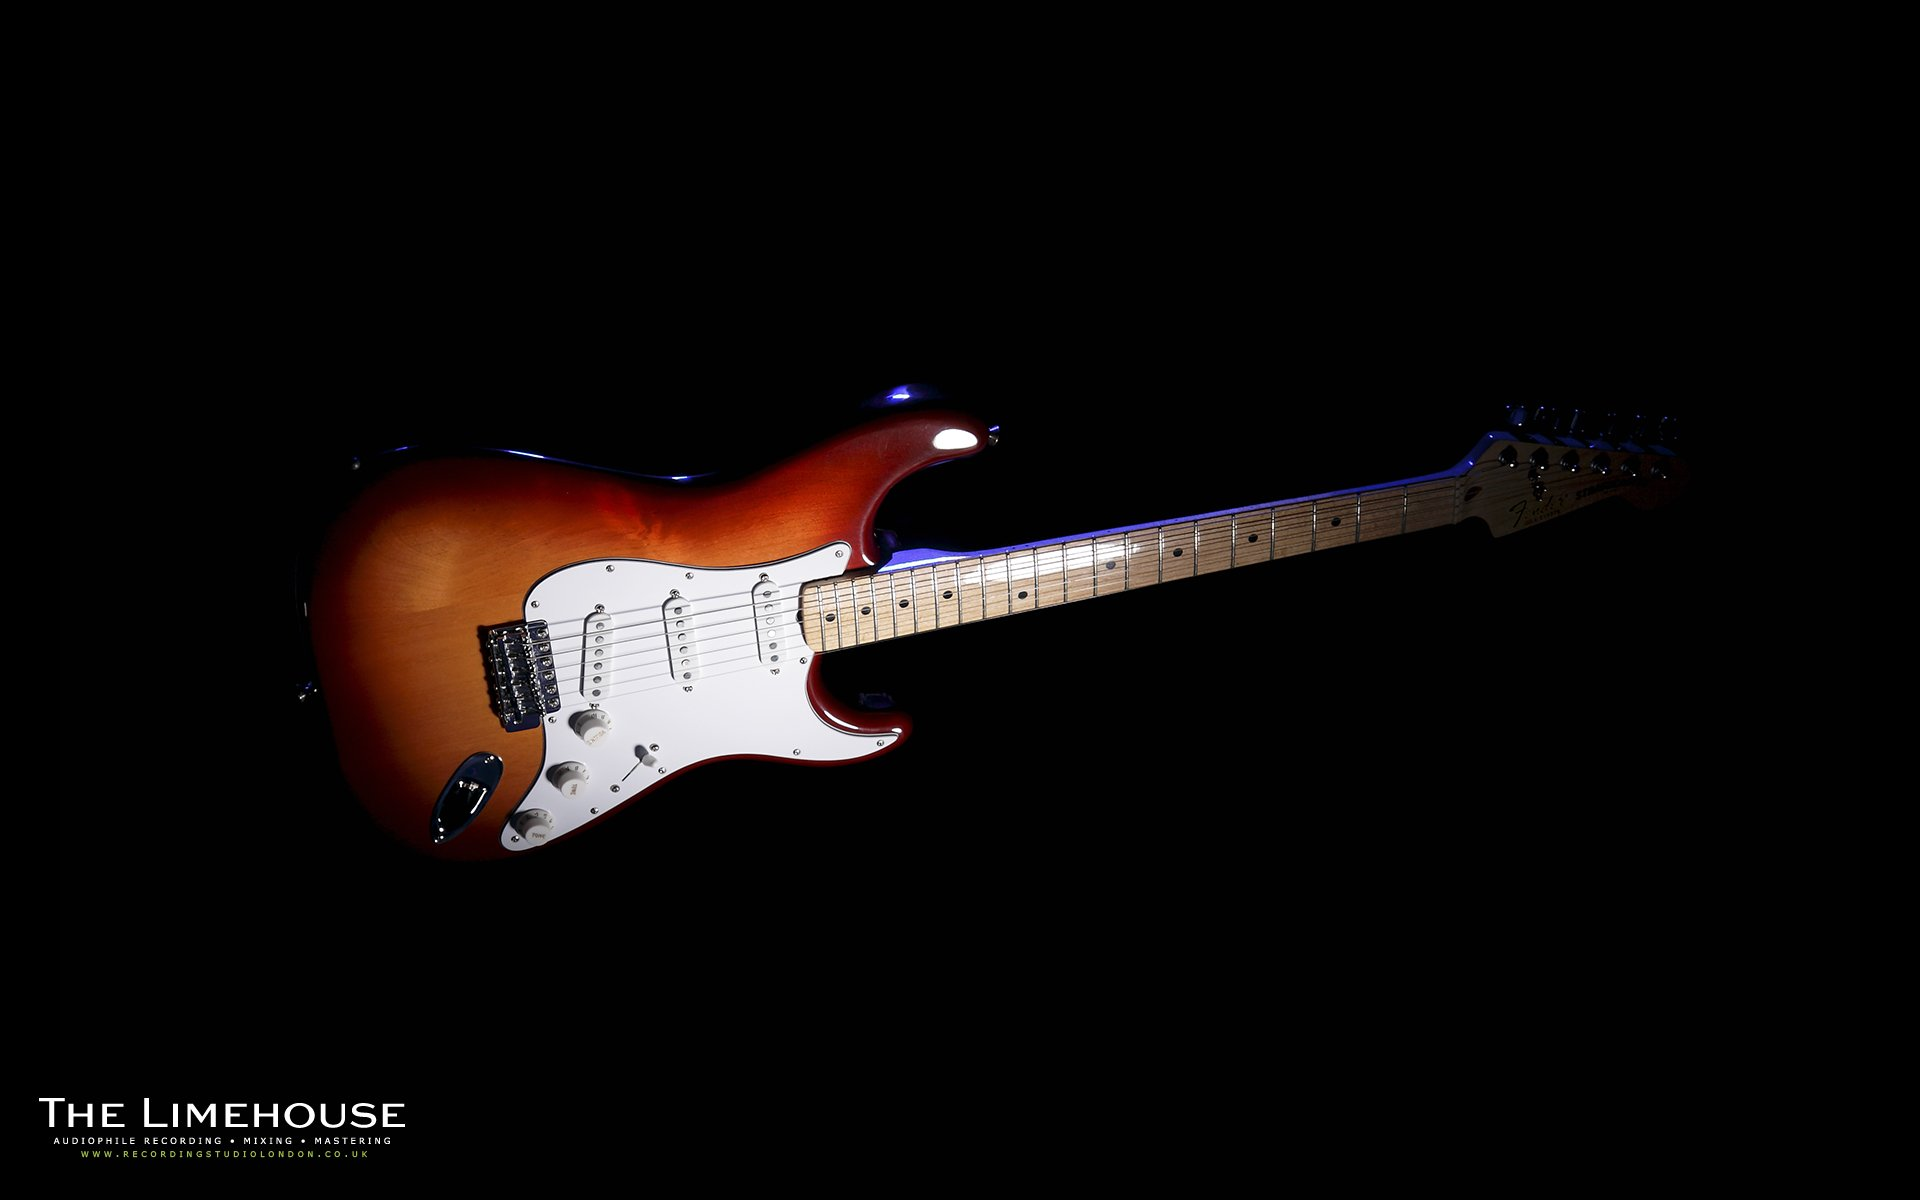 Fender Stratocaster Wallpaper Images Pictures   Becuo 1920x1200